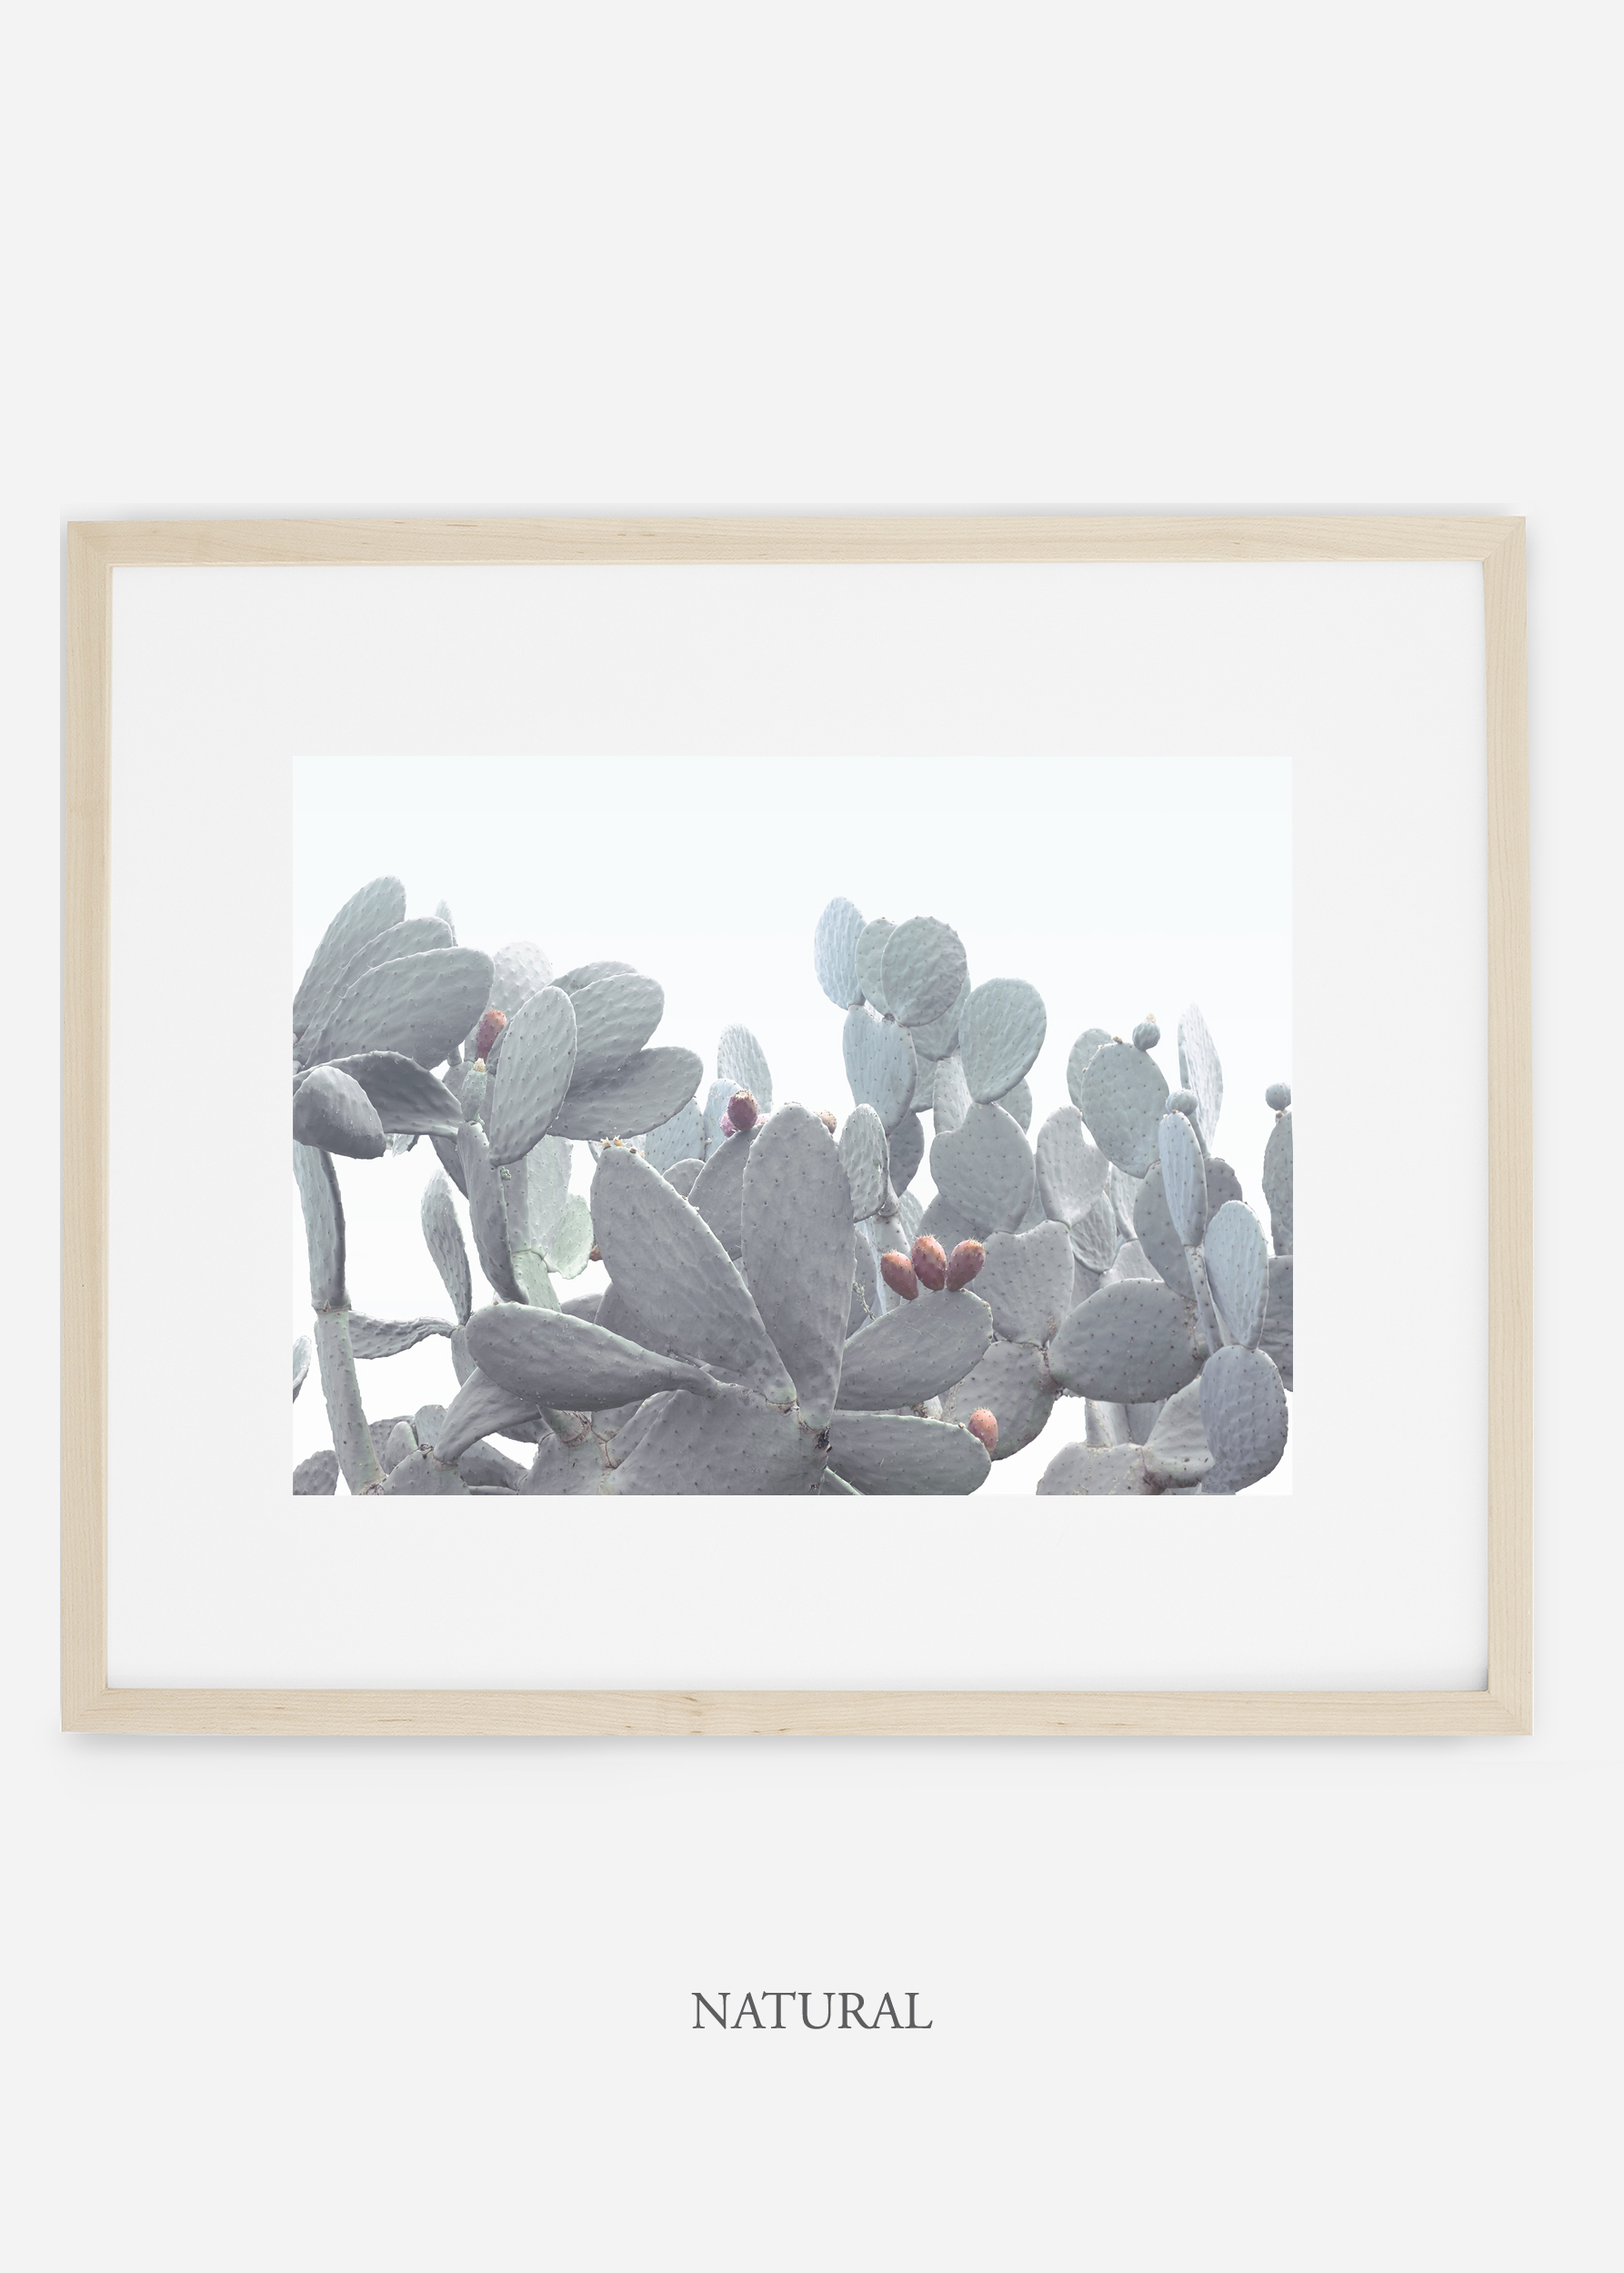 WilderCalifornia_naturalframe_WinterWhite_No4_Art_Photography_interiordesign_agave.jpg